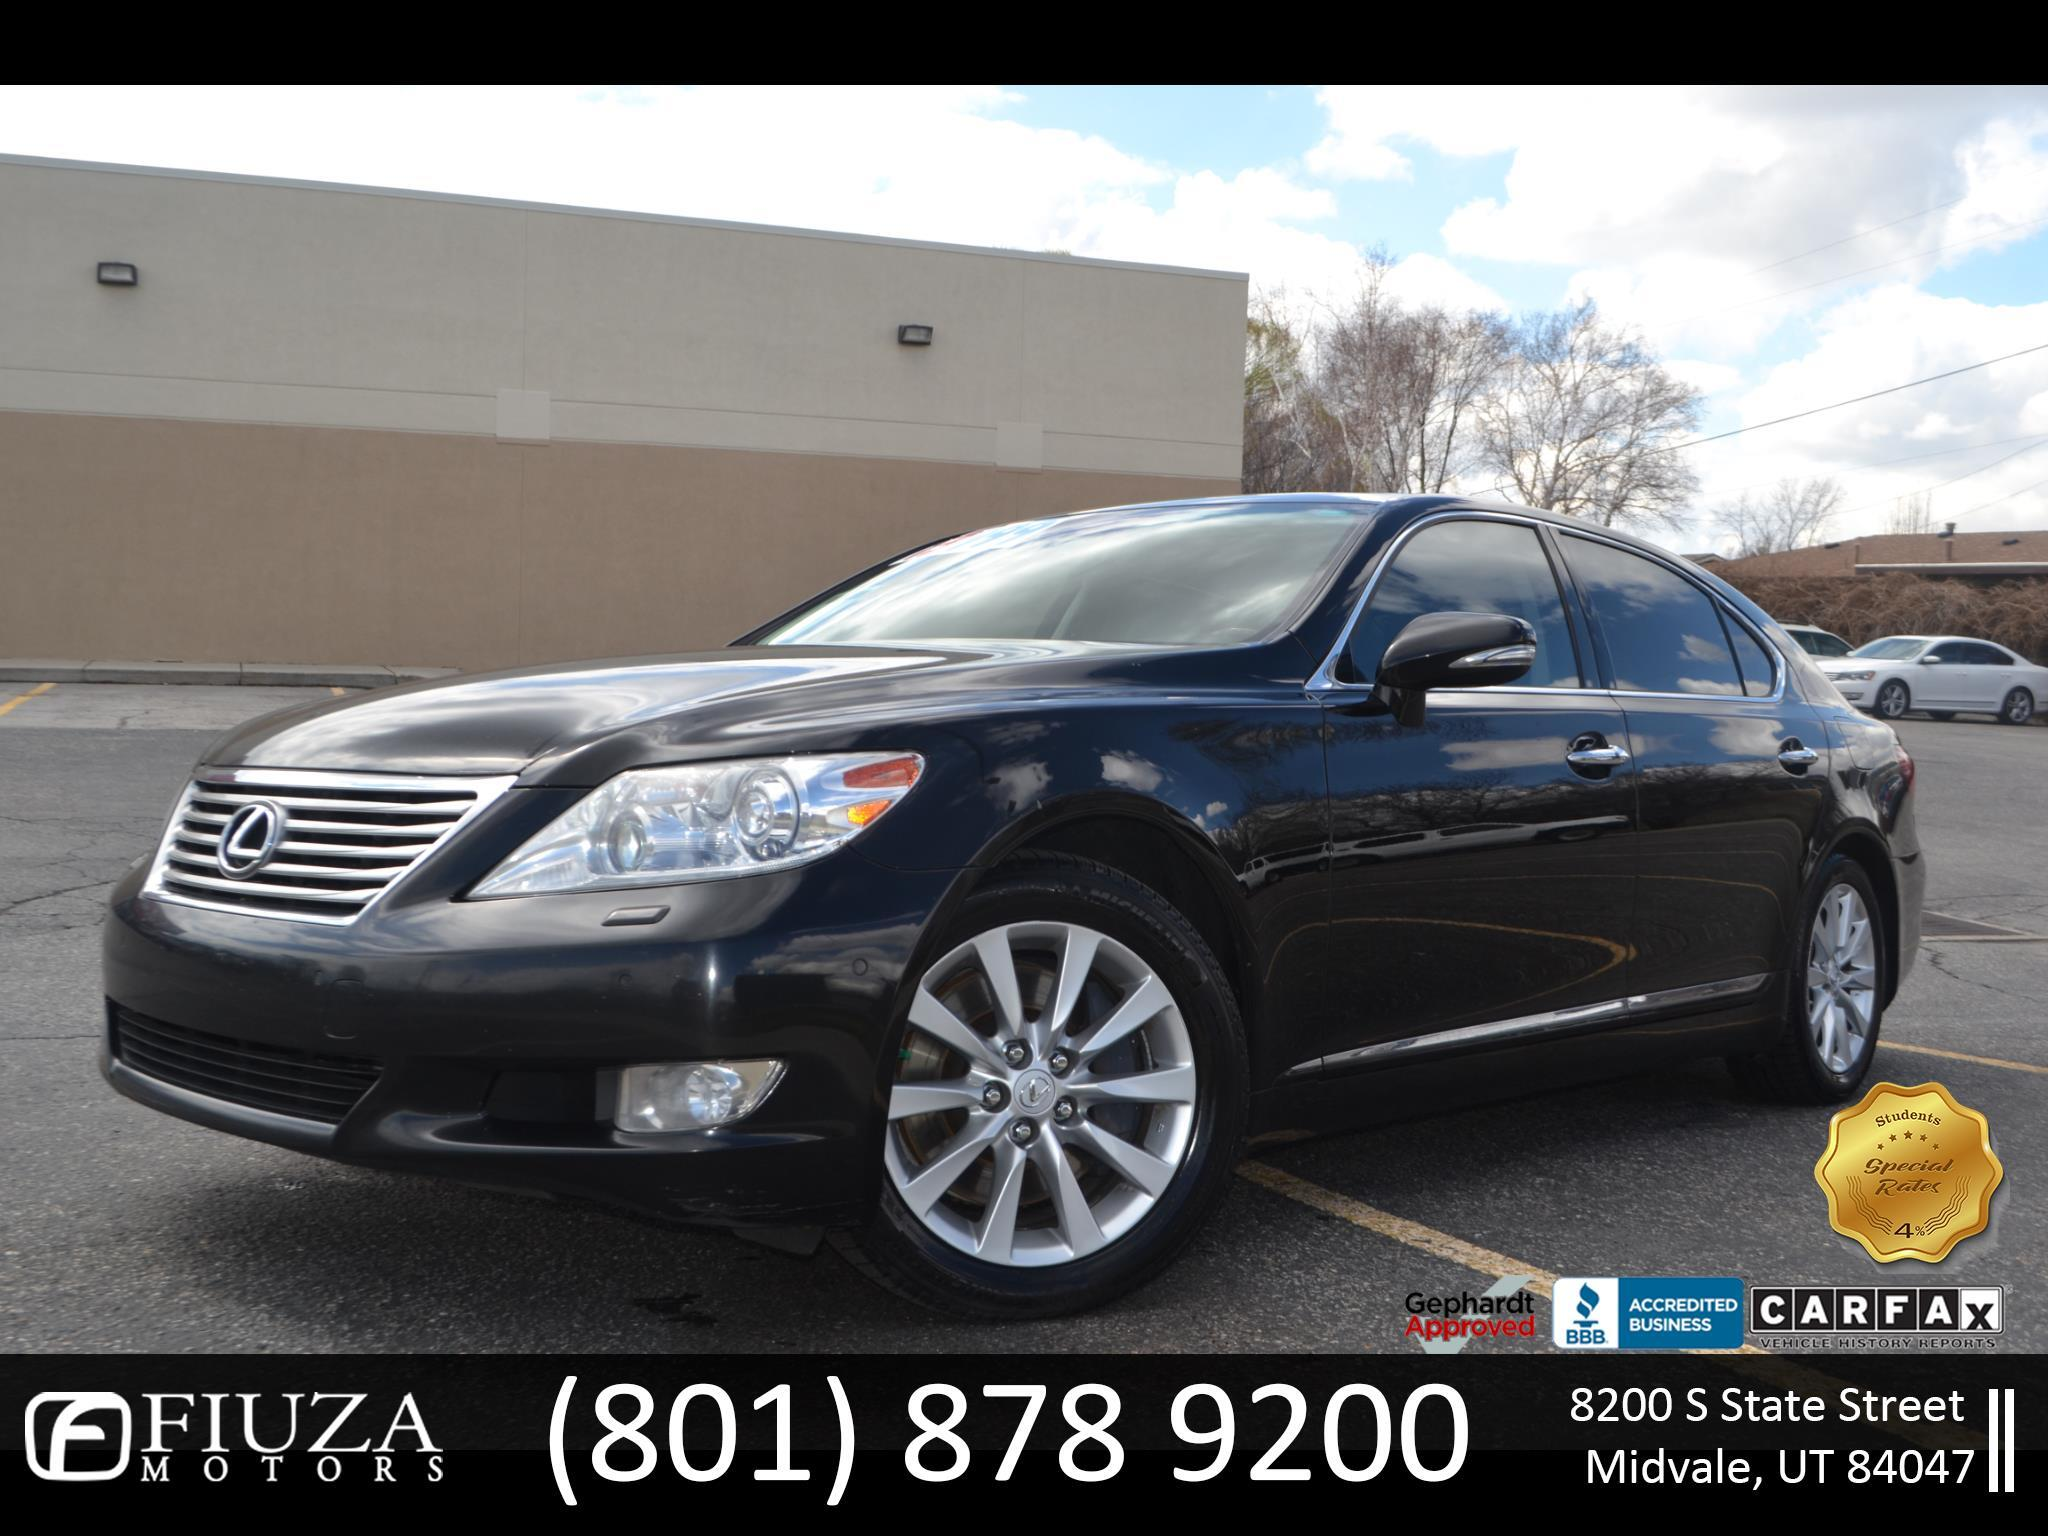 2010 Lexus LS 460 L Luxury Sedan AWD